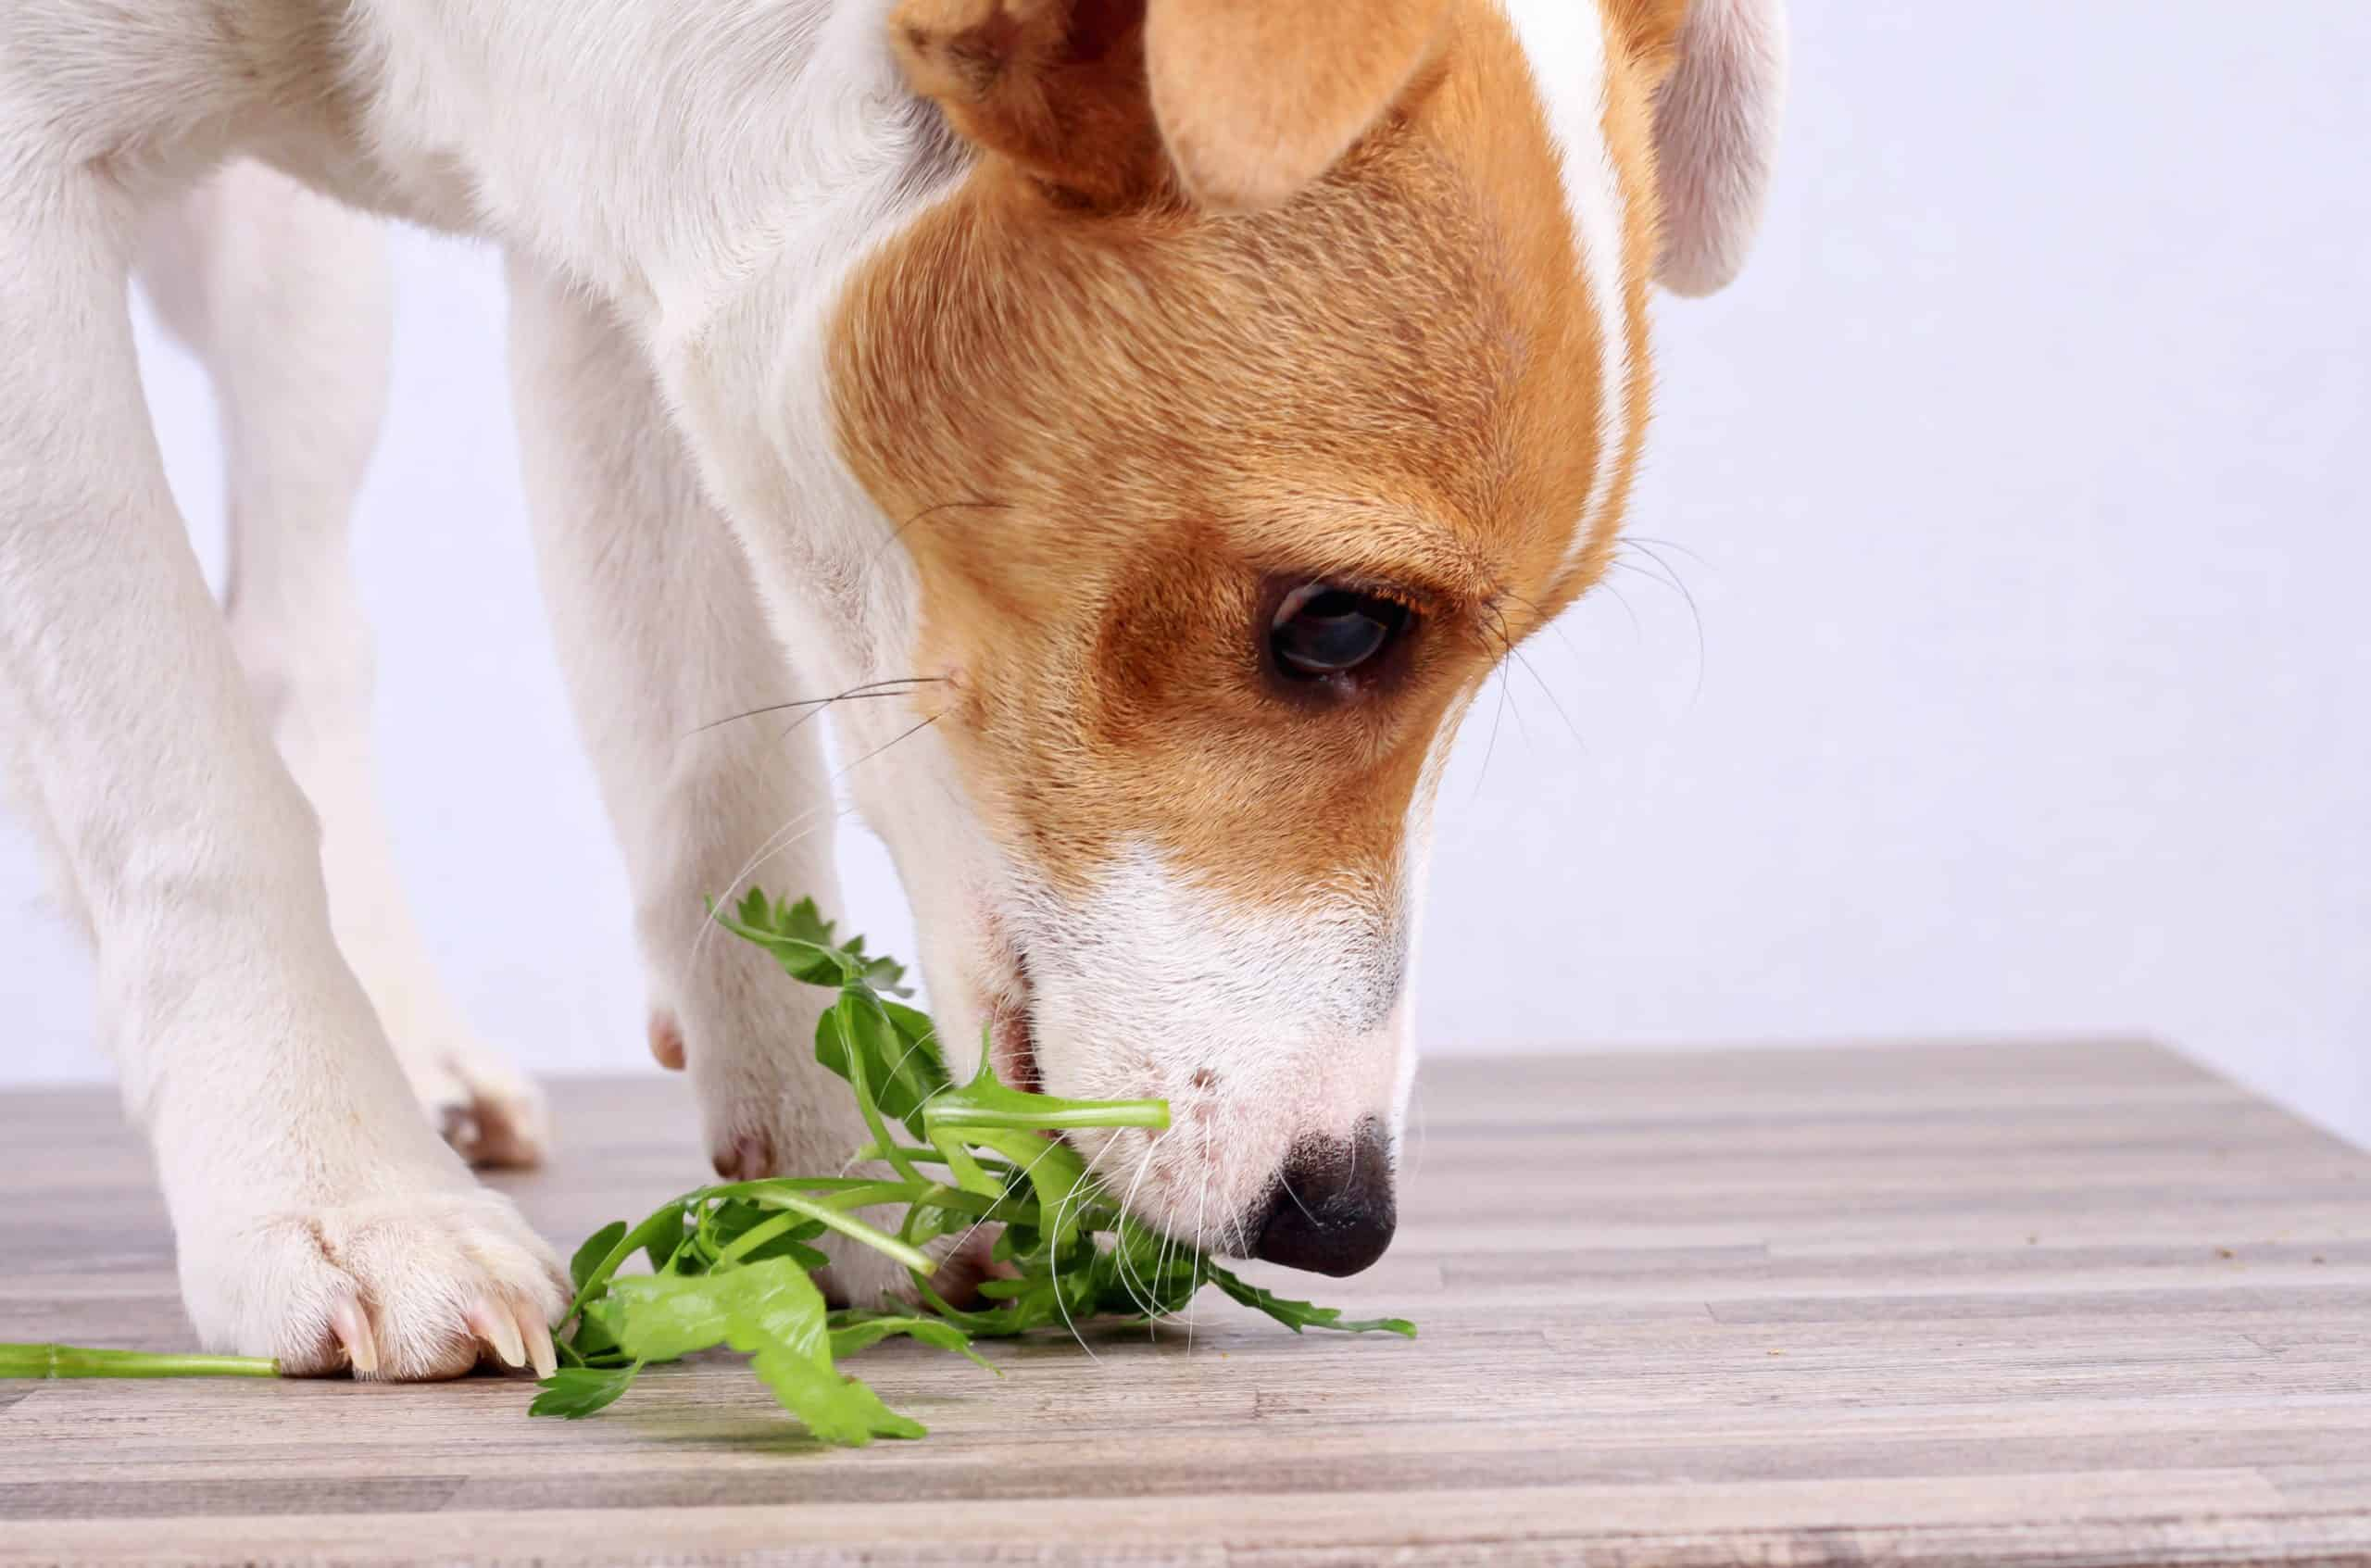 Jack Russell terrier eats parsley. Add finely chopped parsley to your dog's food to improve digestion and fight bad breath. This healthy herb for dogs may help prevent urinary tract infections and both kidney and gallbladder stones. It's right in anti-oxidants and is a natural diuretic.